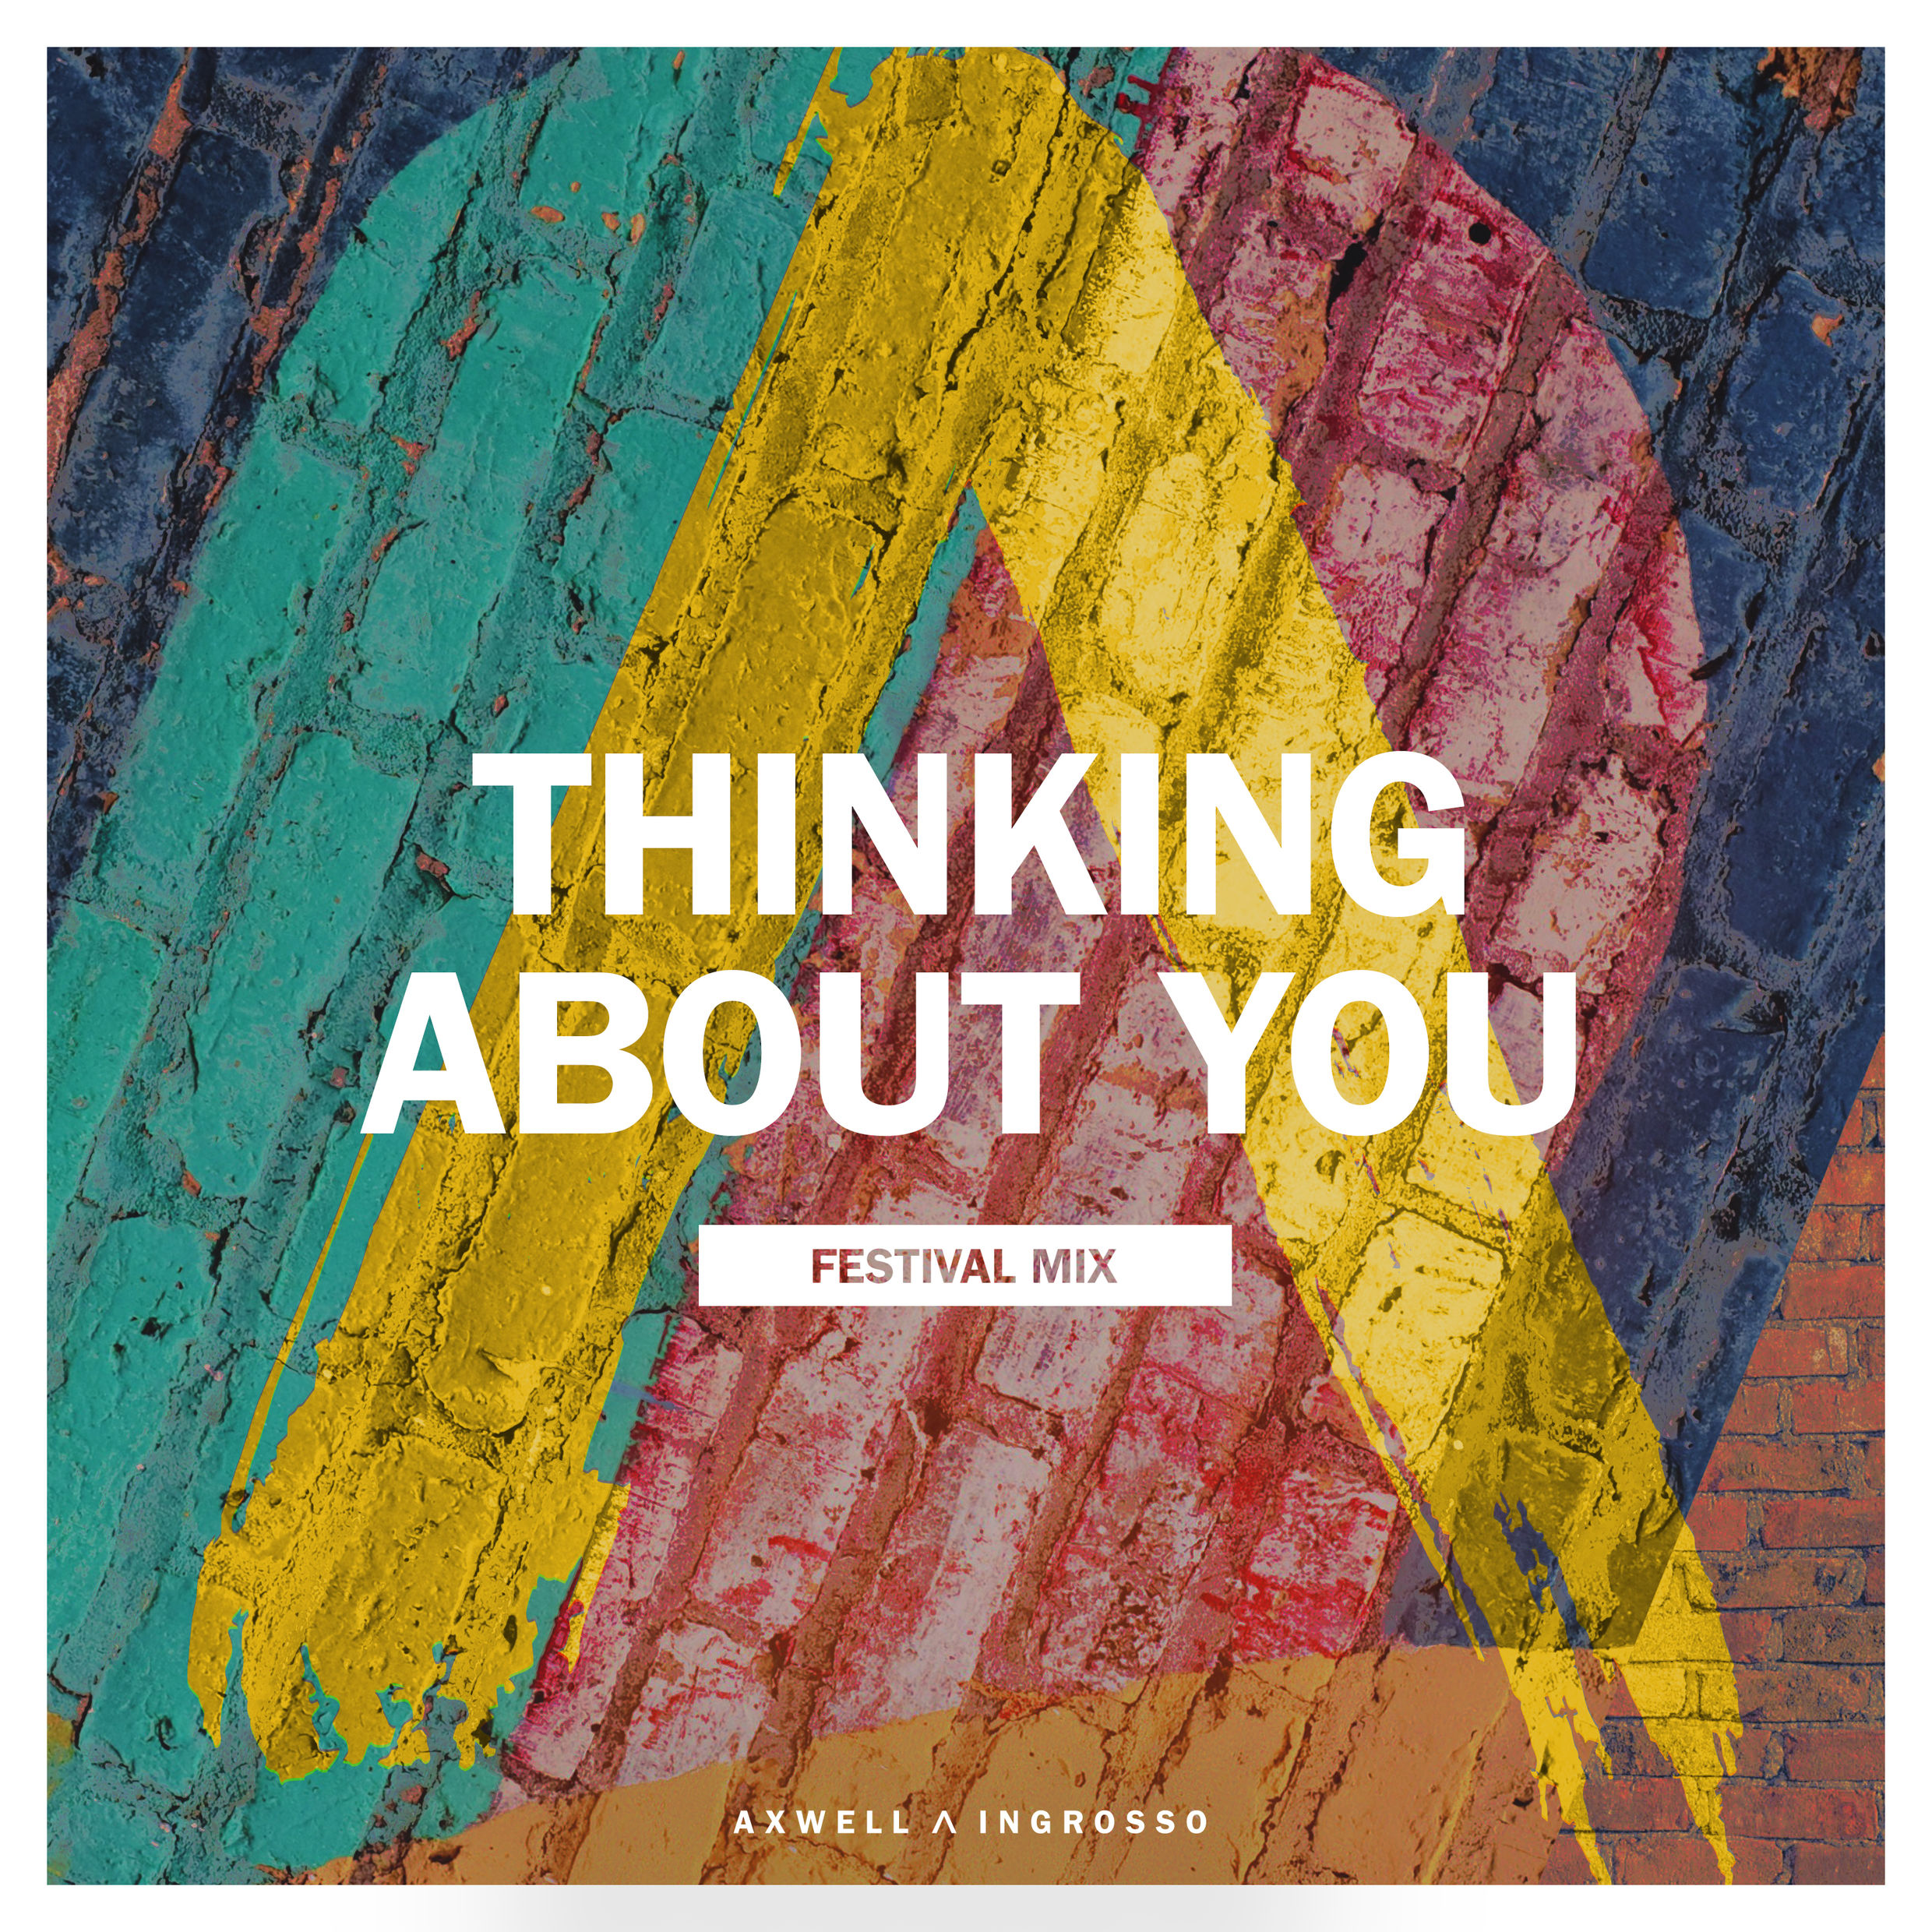 Axwell Ingrosso - Thinking About You (Festival Mix)